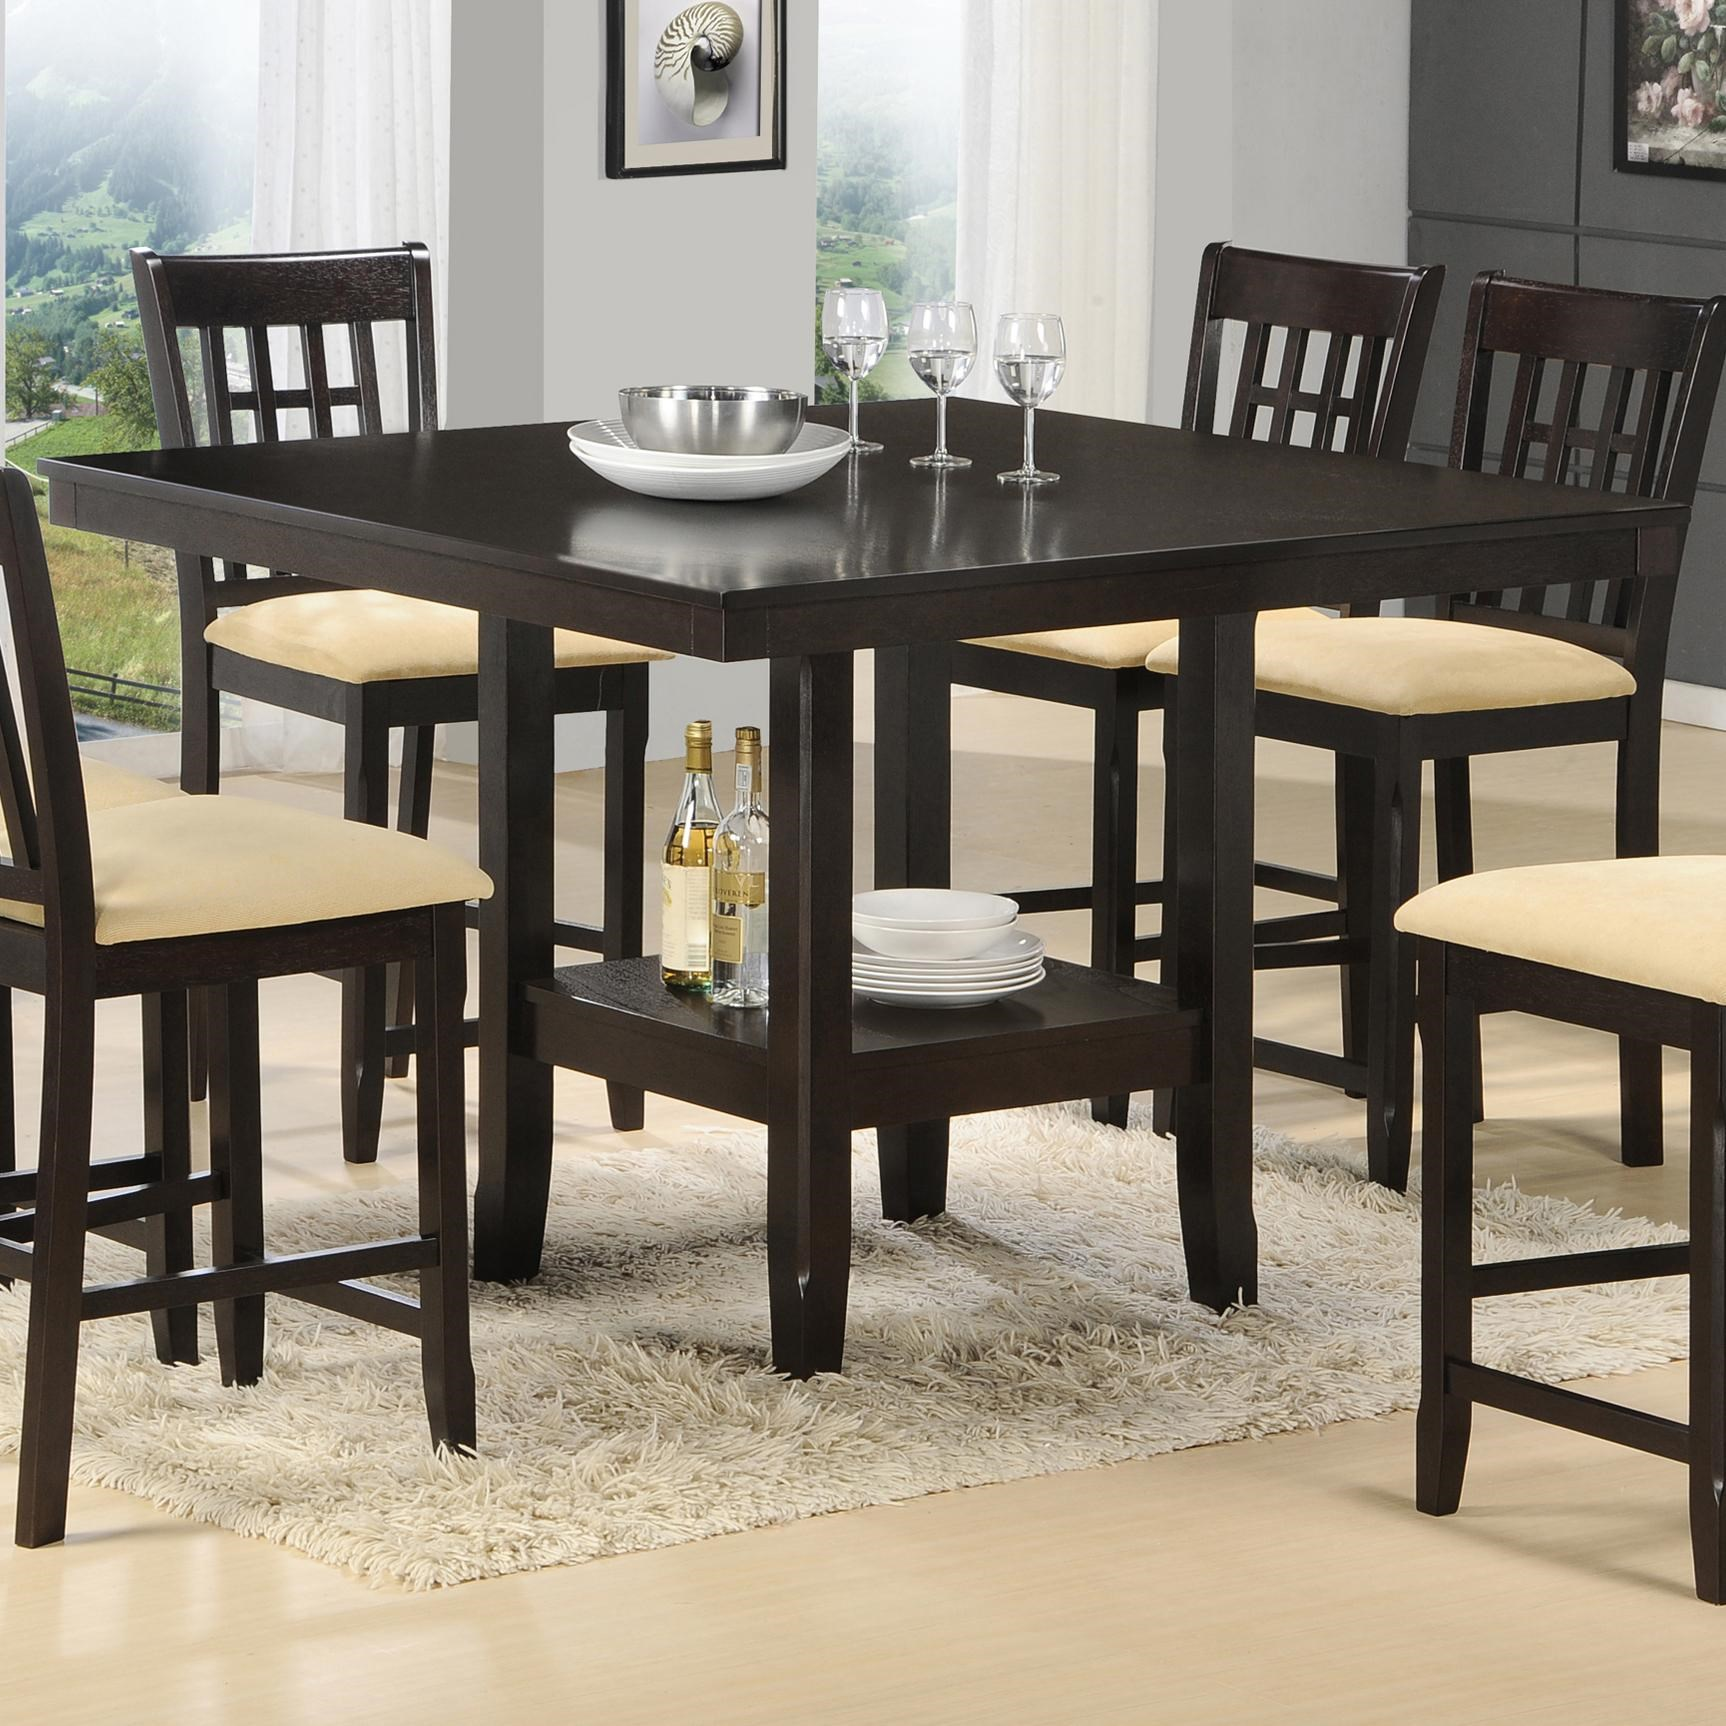 Morris Home TabaconCounter Height Gathering Table w/ Wine Rack ...  sc 1 st  Morris Furniture & Tabacon Counter Height Gathering Table with Wine Rack | Morris Home ...